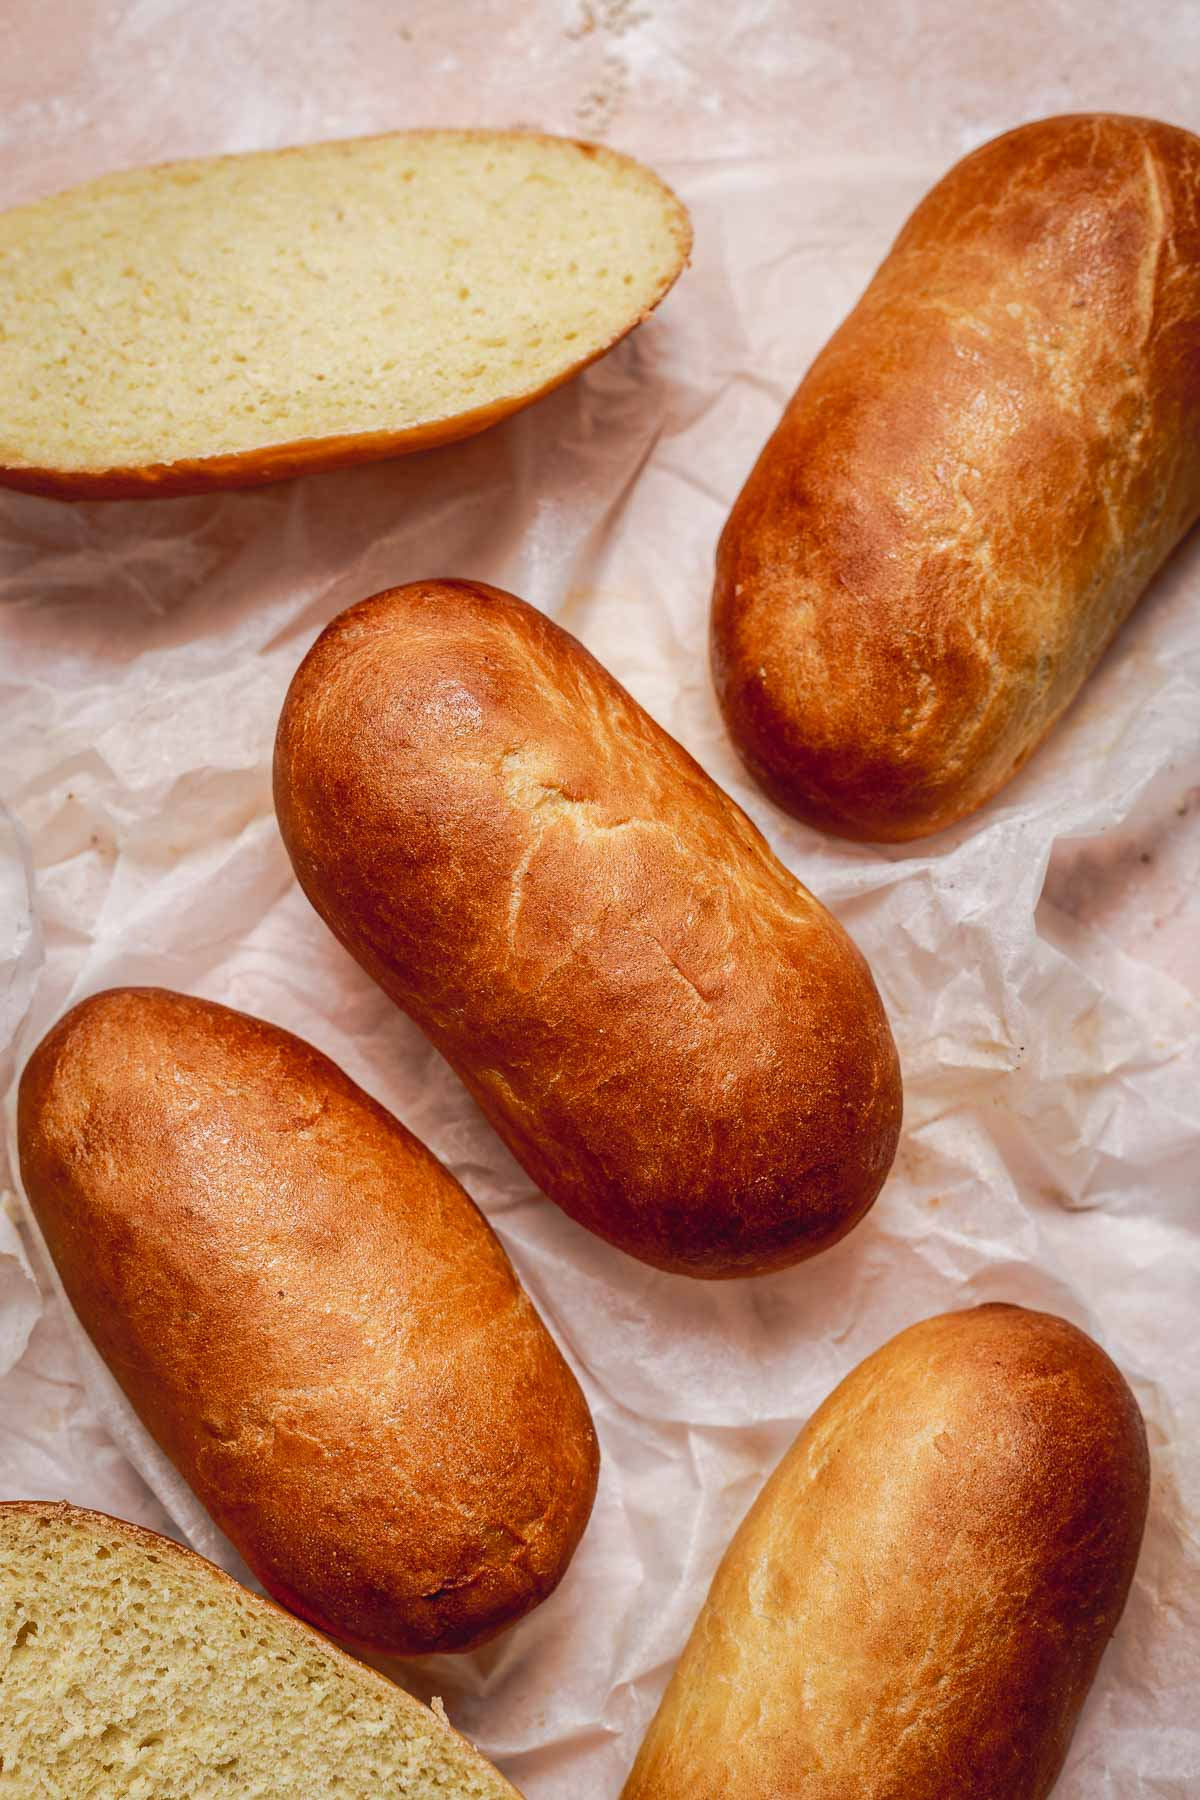 Freshly baked hot dog buns with a glossy glaze placed on a sheet of parchment paper.